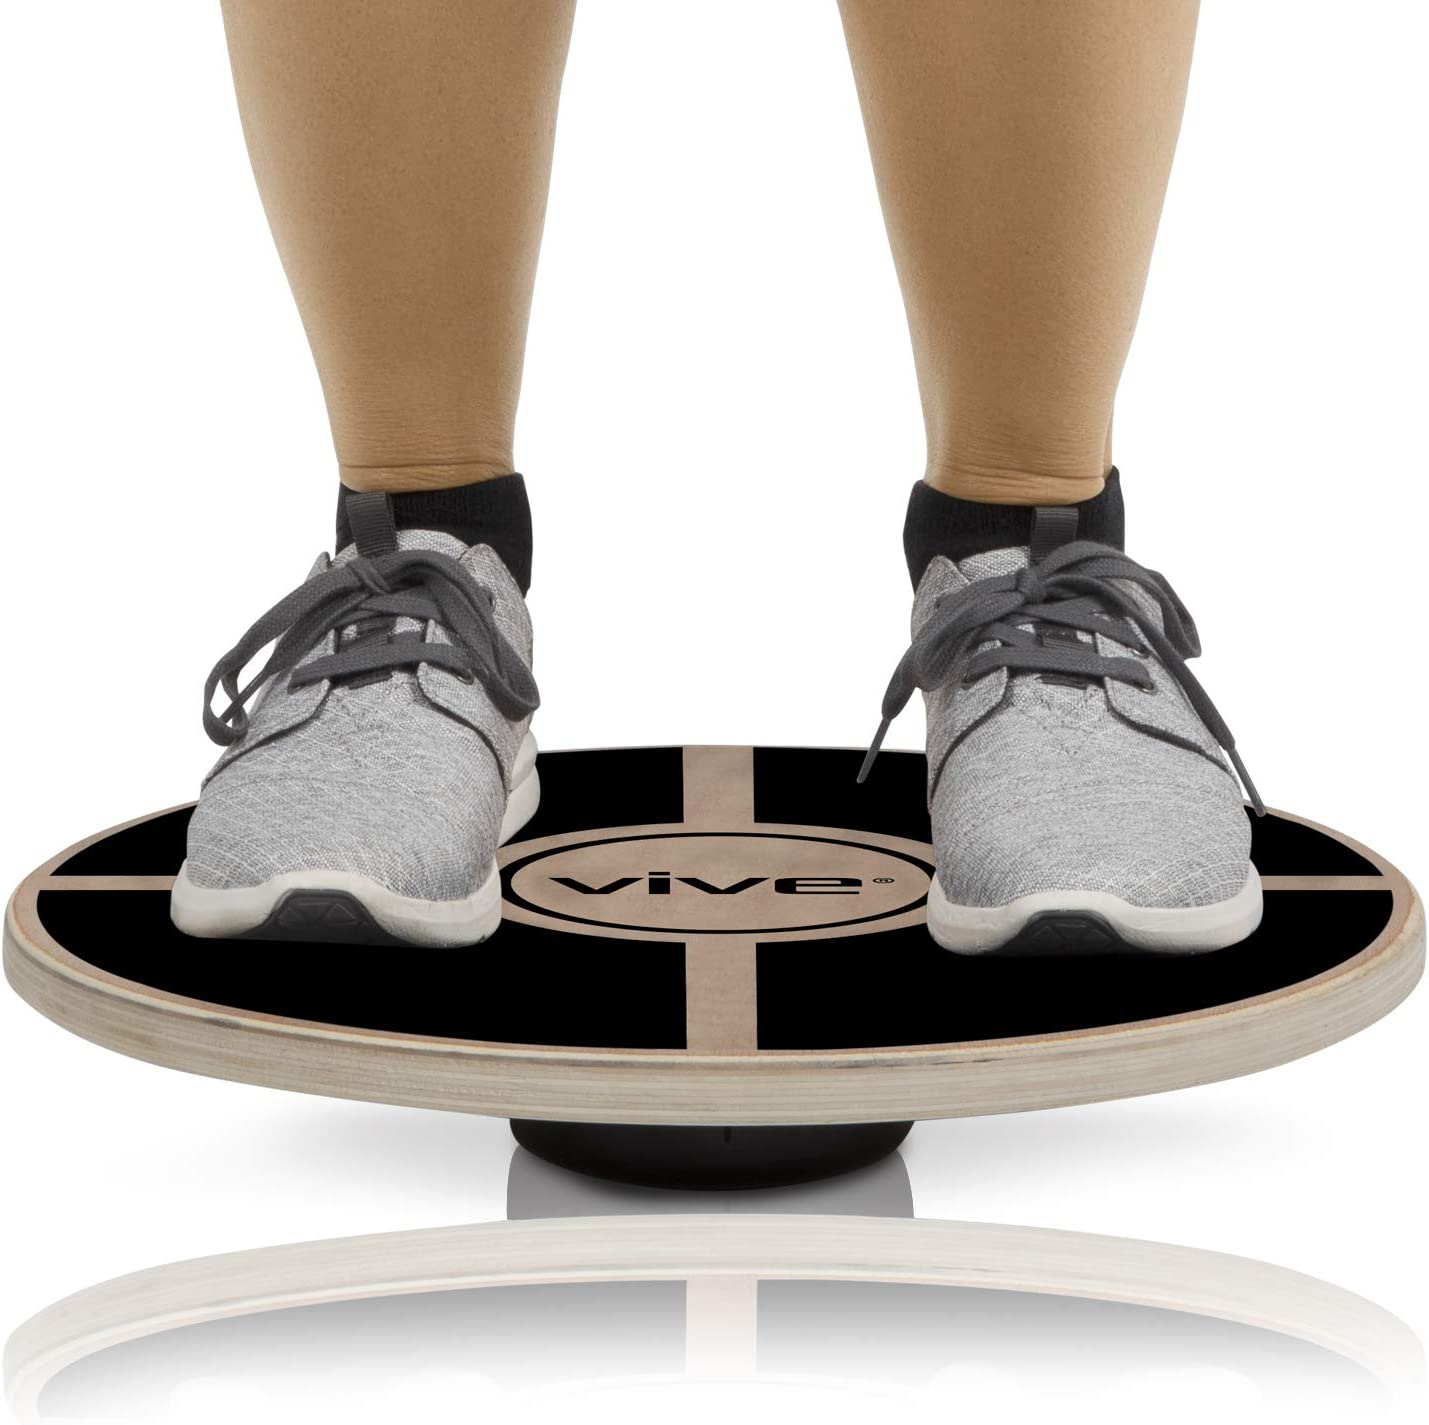 Vive Balance Board – Wooden Self Balancing Wobble Platform – Wood Twist Trainer for Fit Abs, Arms, Legs, Core Tone, Surf, Skateboard, Gymnastics, Ballet, Exercise, Physical Therapy, and Kids